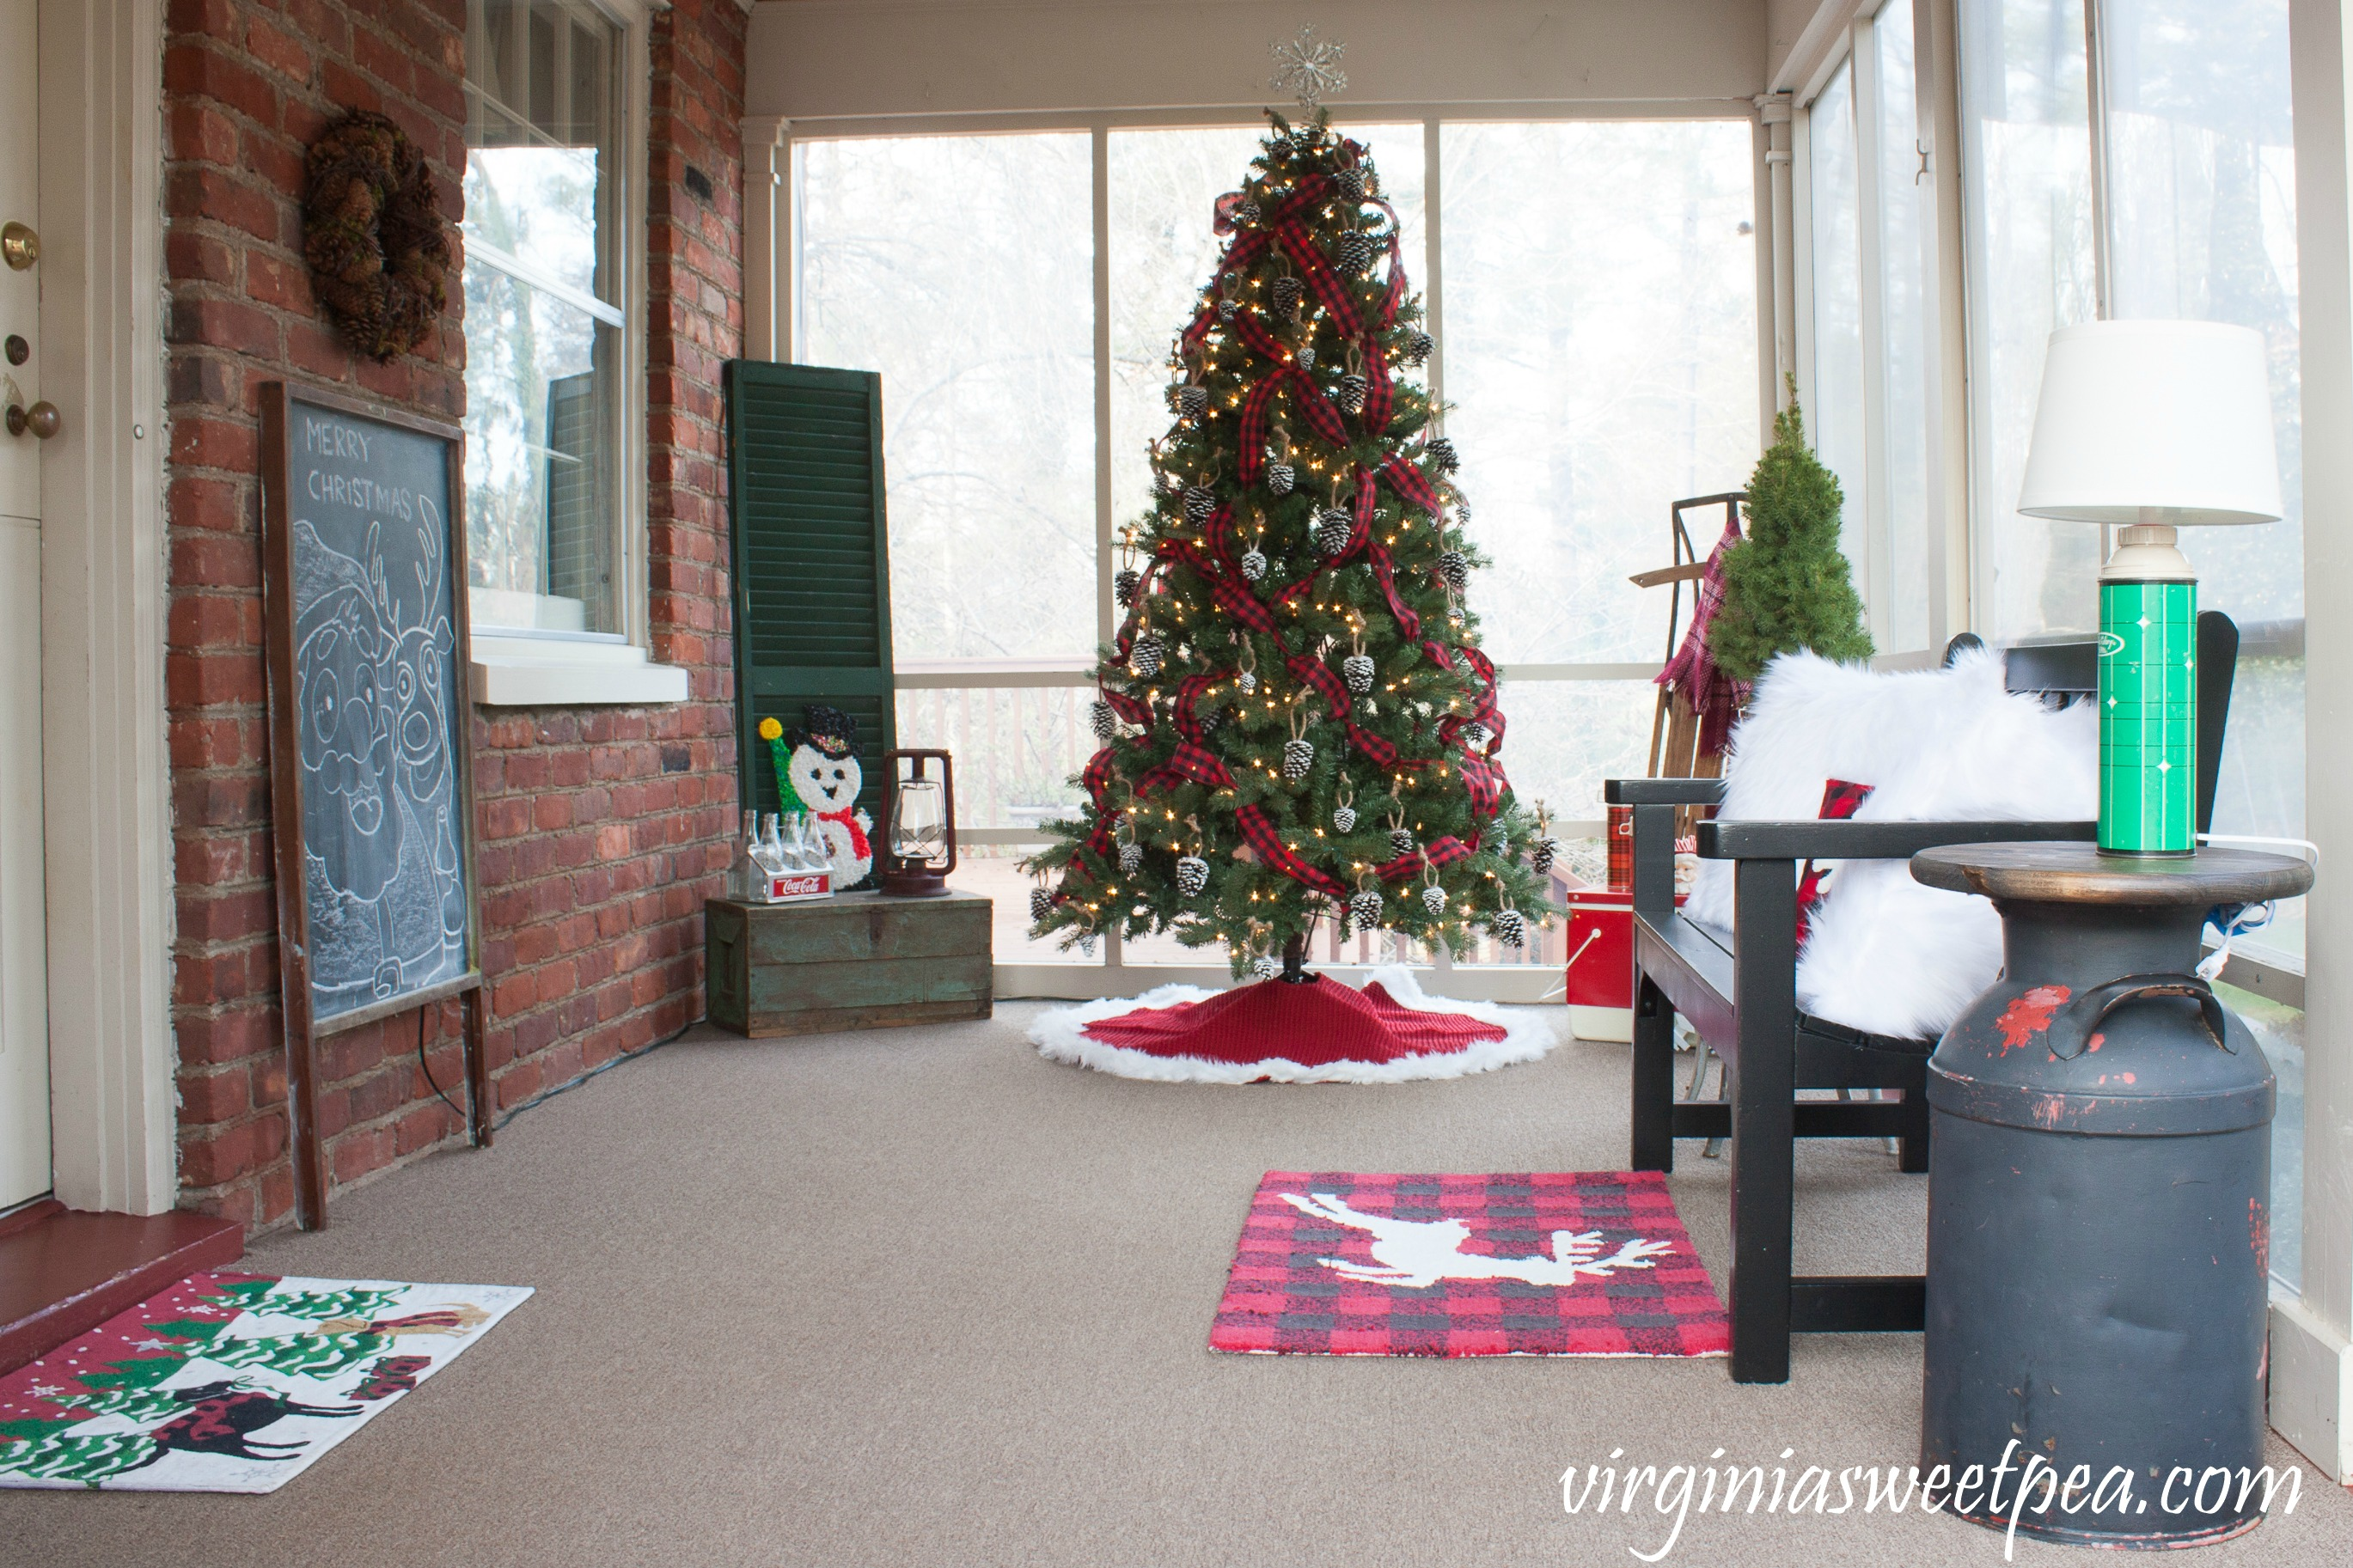 See a porch decorated for Christmas using mostly vintage decor and get ideas for decorating your Christmas porch from 18 bloggers. #christmas #christmasdecor #christmasporchdecor #christmasporch #christmasdecorations #vintage #vintagechristmas